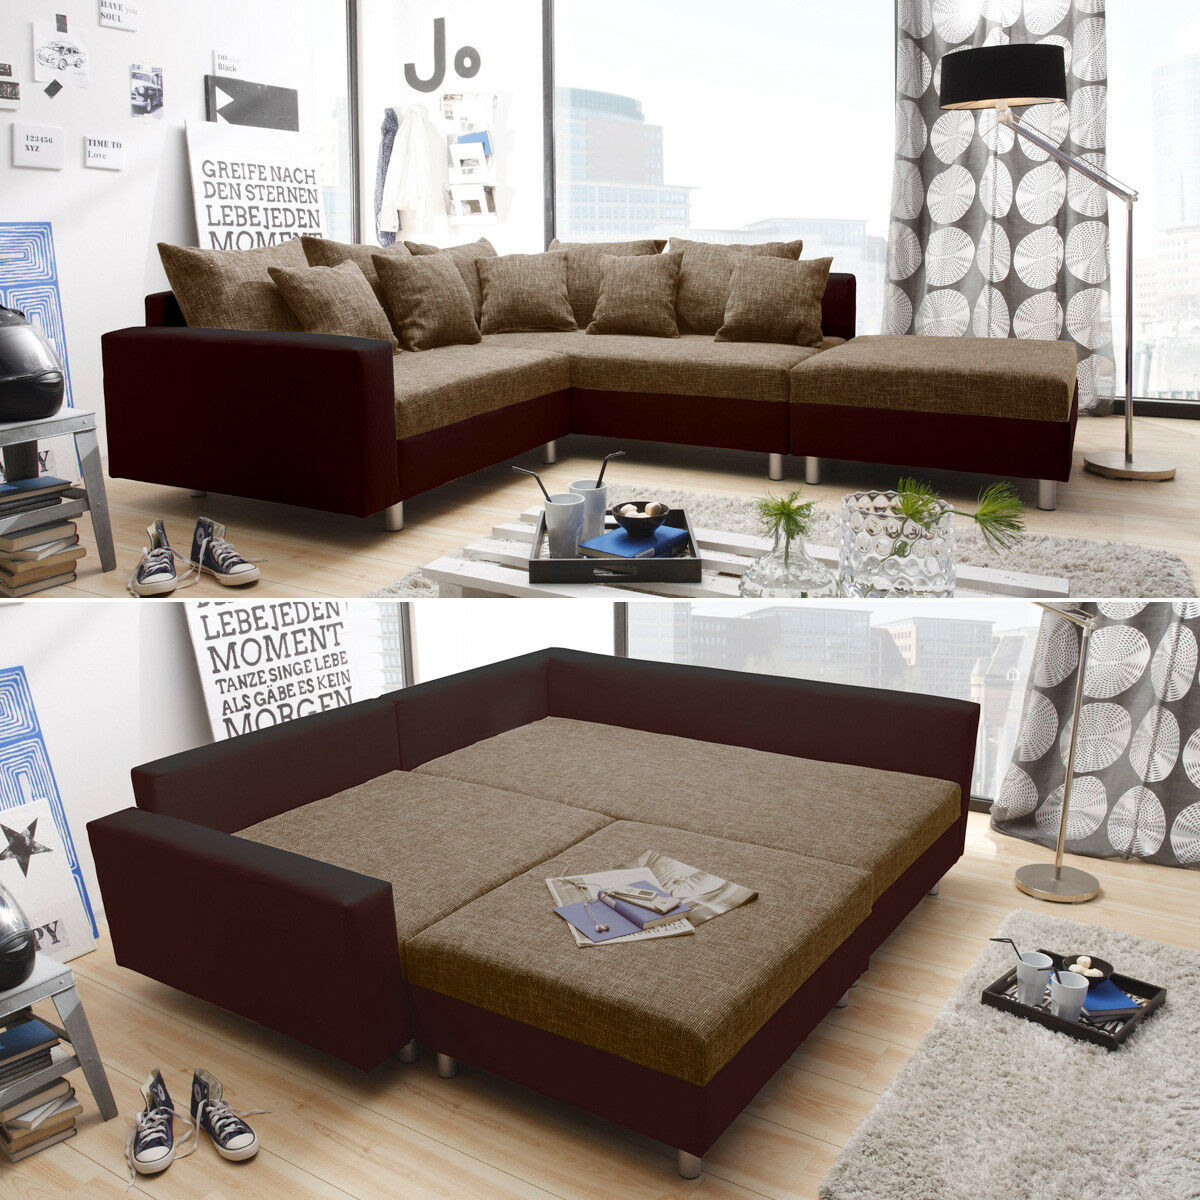 ecksofa claudia wohnlandschaft ottomane rechts sofa mit hocker braun eur 389 95 picclick de. Black Bedroom Furniture Sets. Home Design Ideas